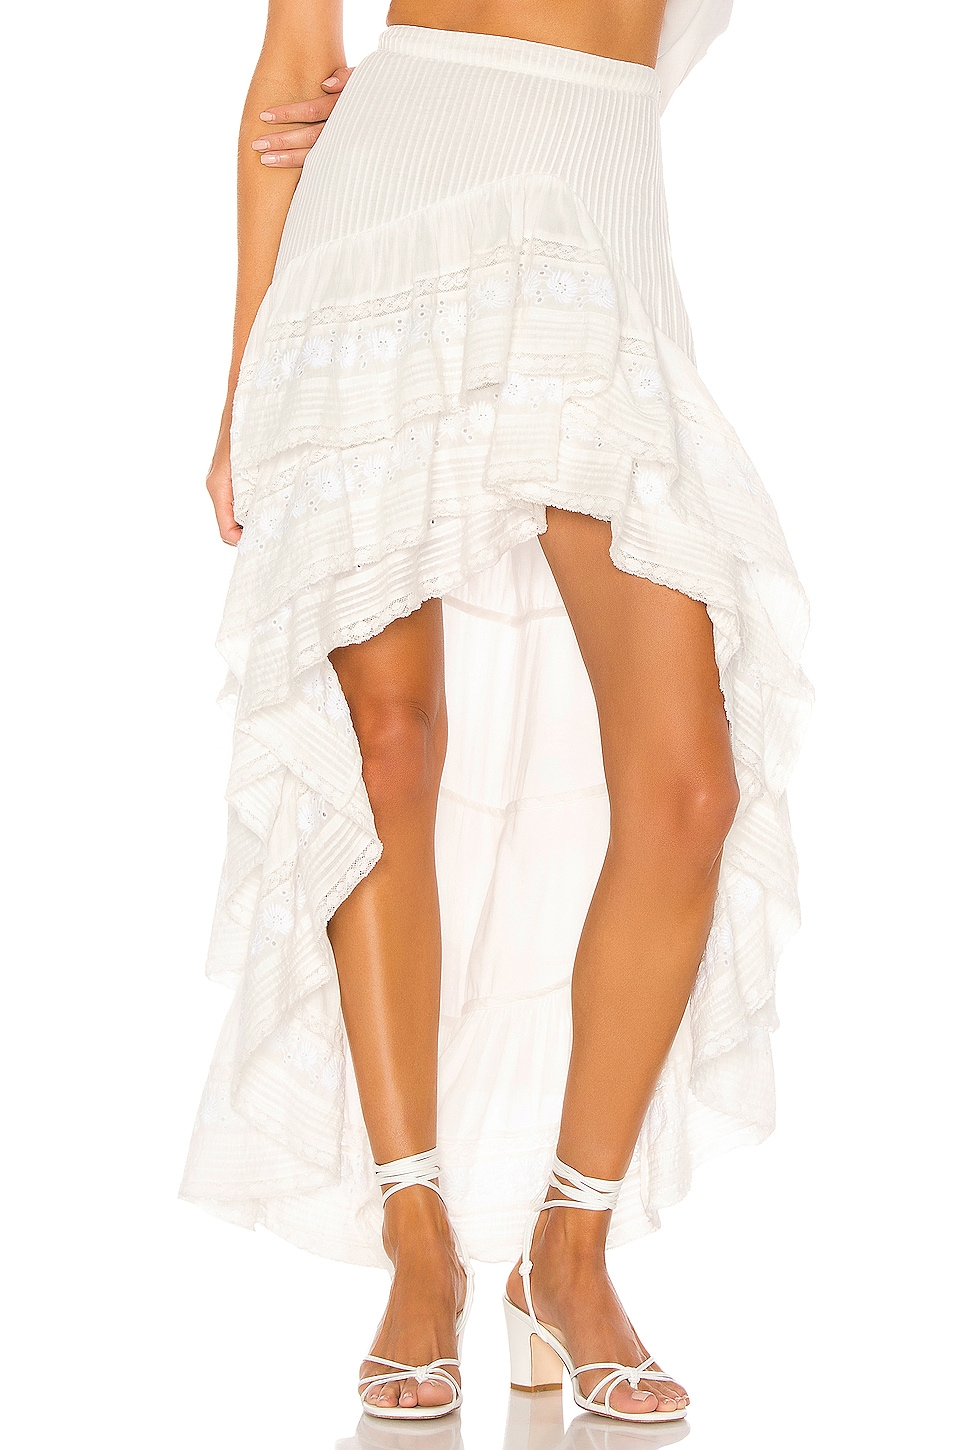 LoveShackFancy Lisette Maxi Skirt in Antique White